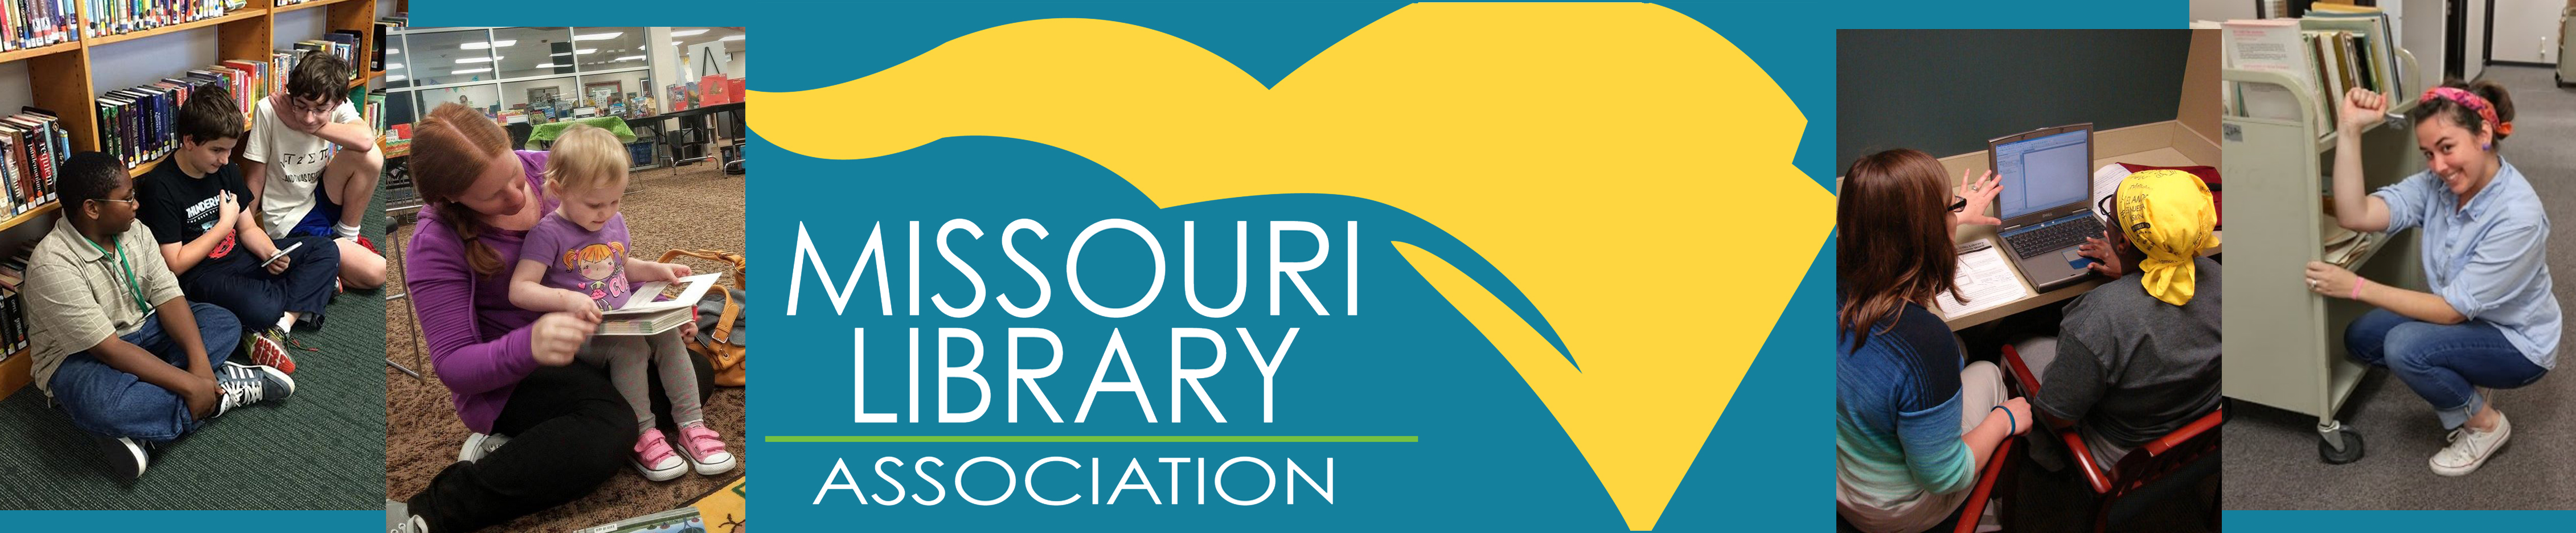 Missouri Library Association